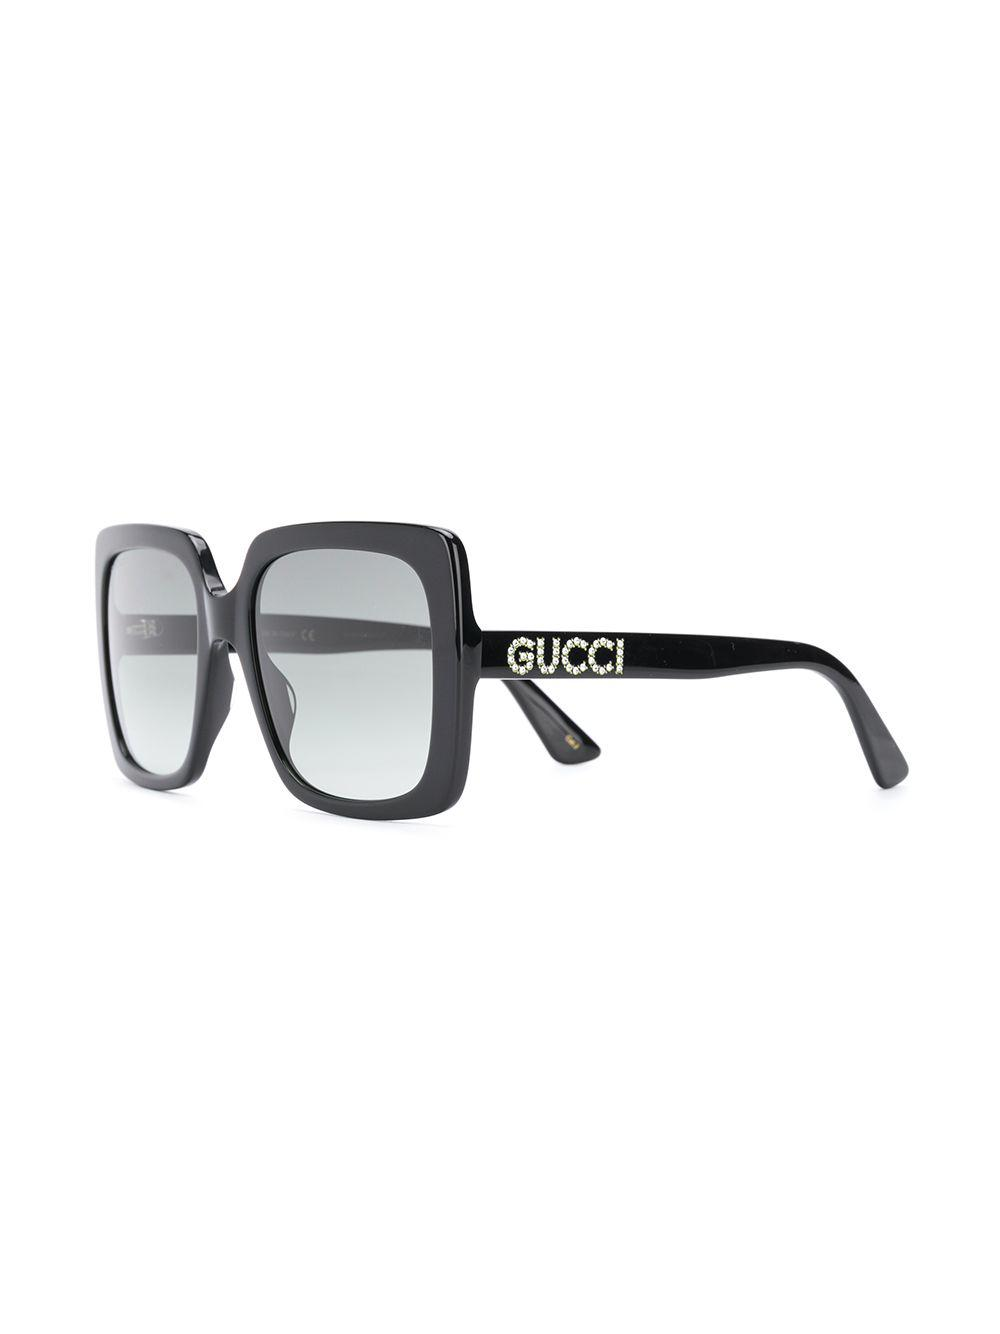 0b8c82be1f46d Gucci Mass Large Square Sunglasses in Black - Lyst